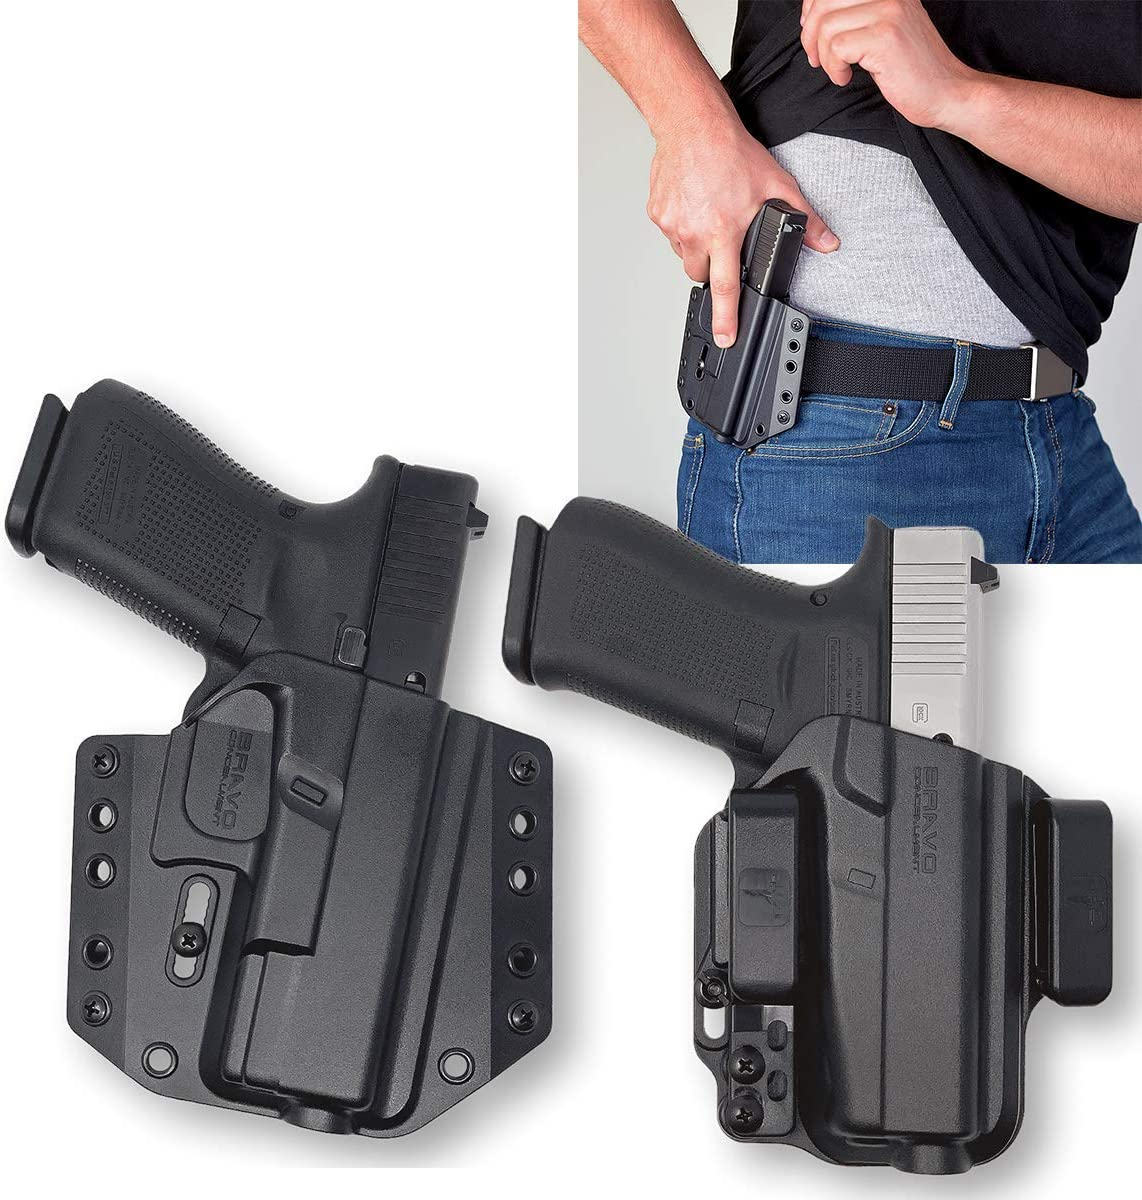 Bravo Dealing full price reduction Popular Concealment OWB IWB Holsters Concealed Carry